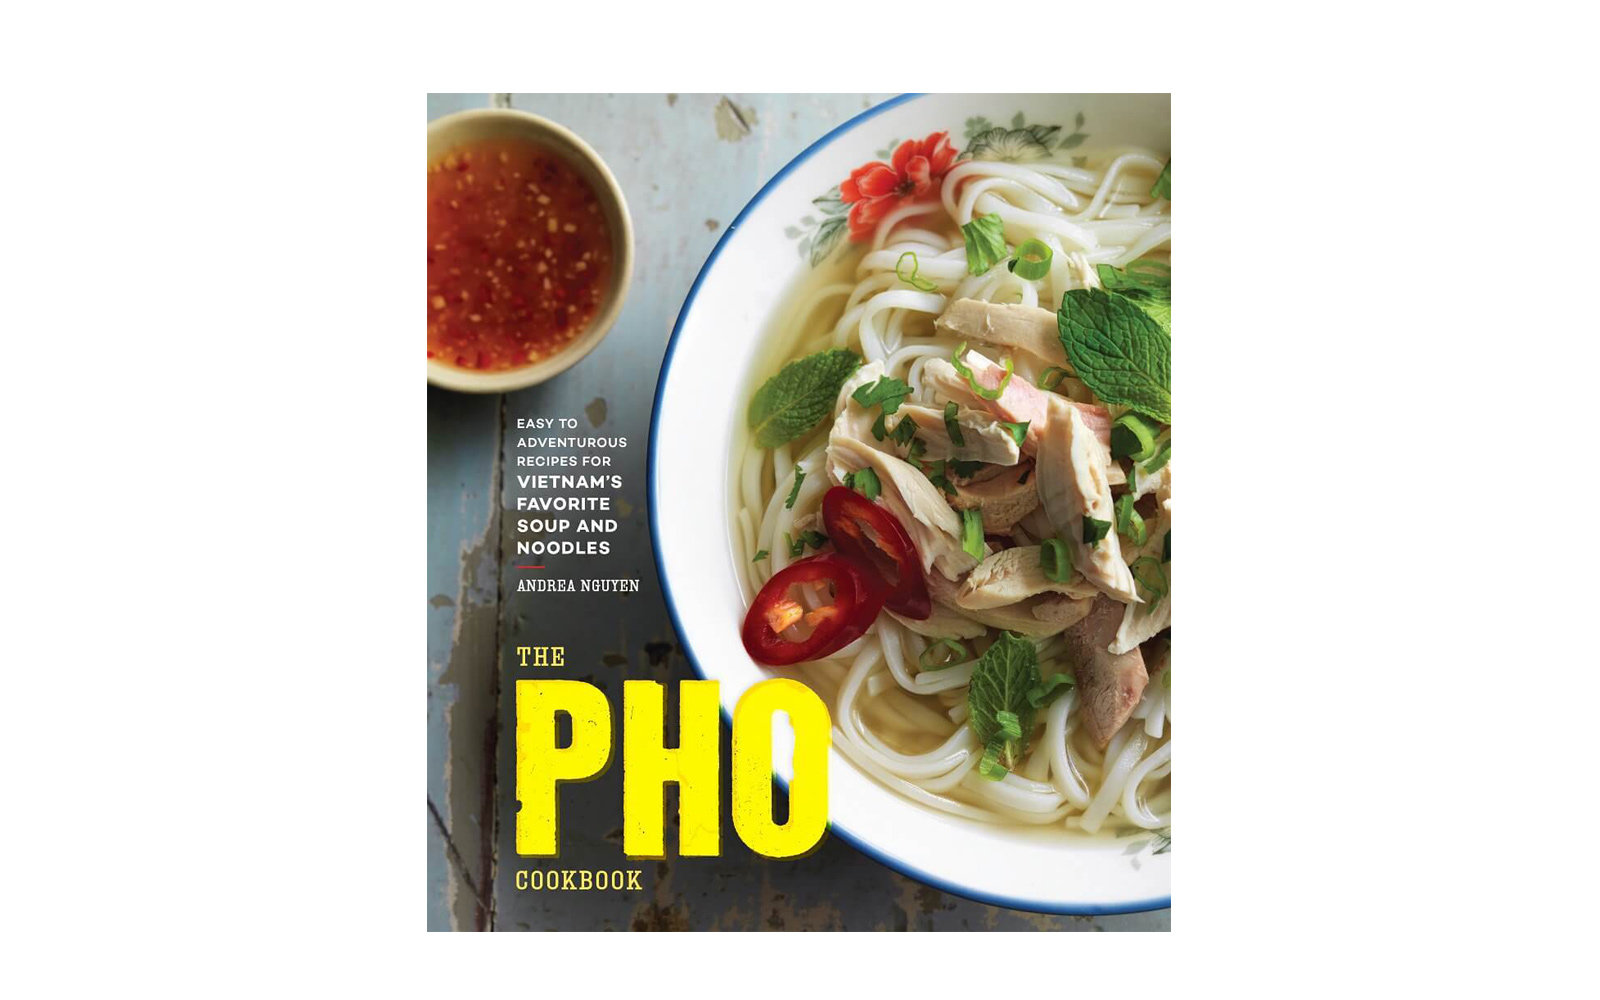 The Pho Cookbook, by Andrea Nguyen